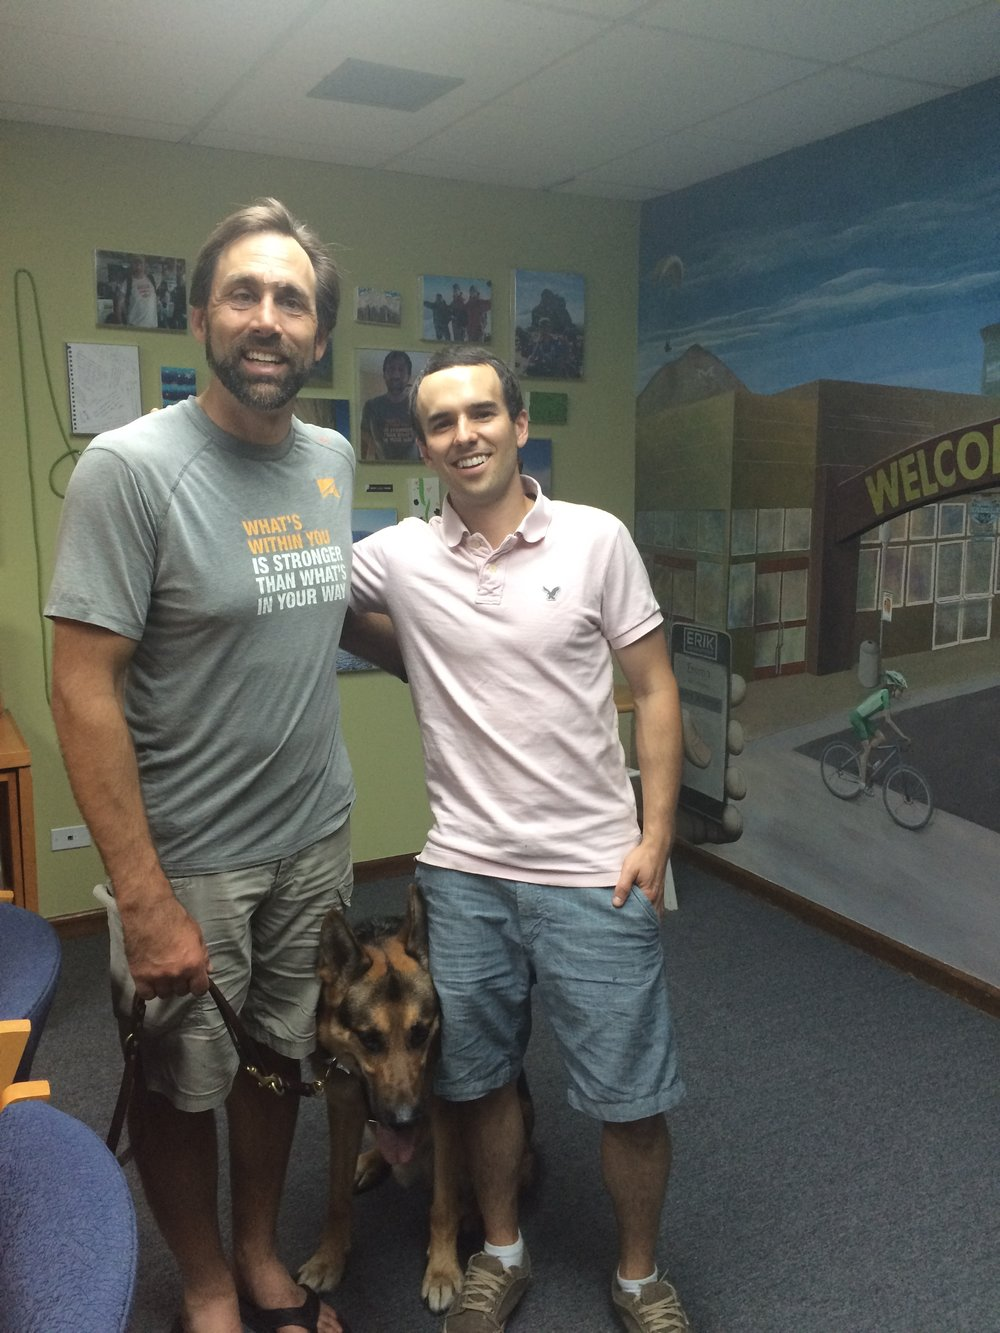 Erik and I at his office in Golden, Colorado.